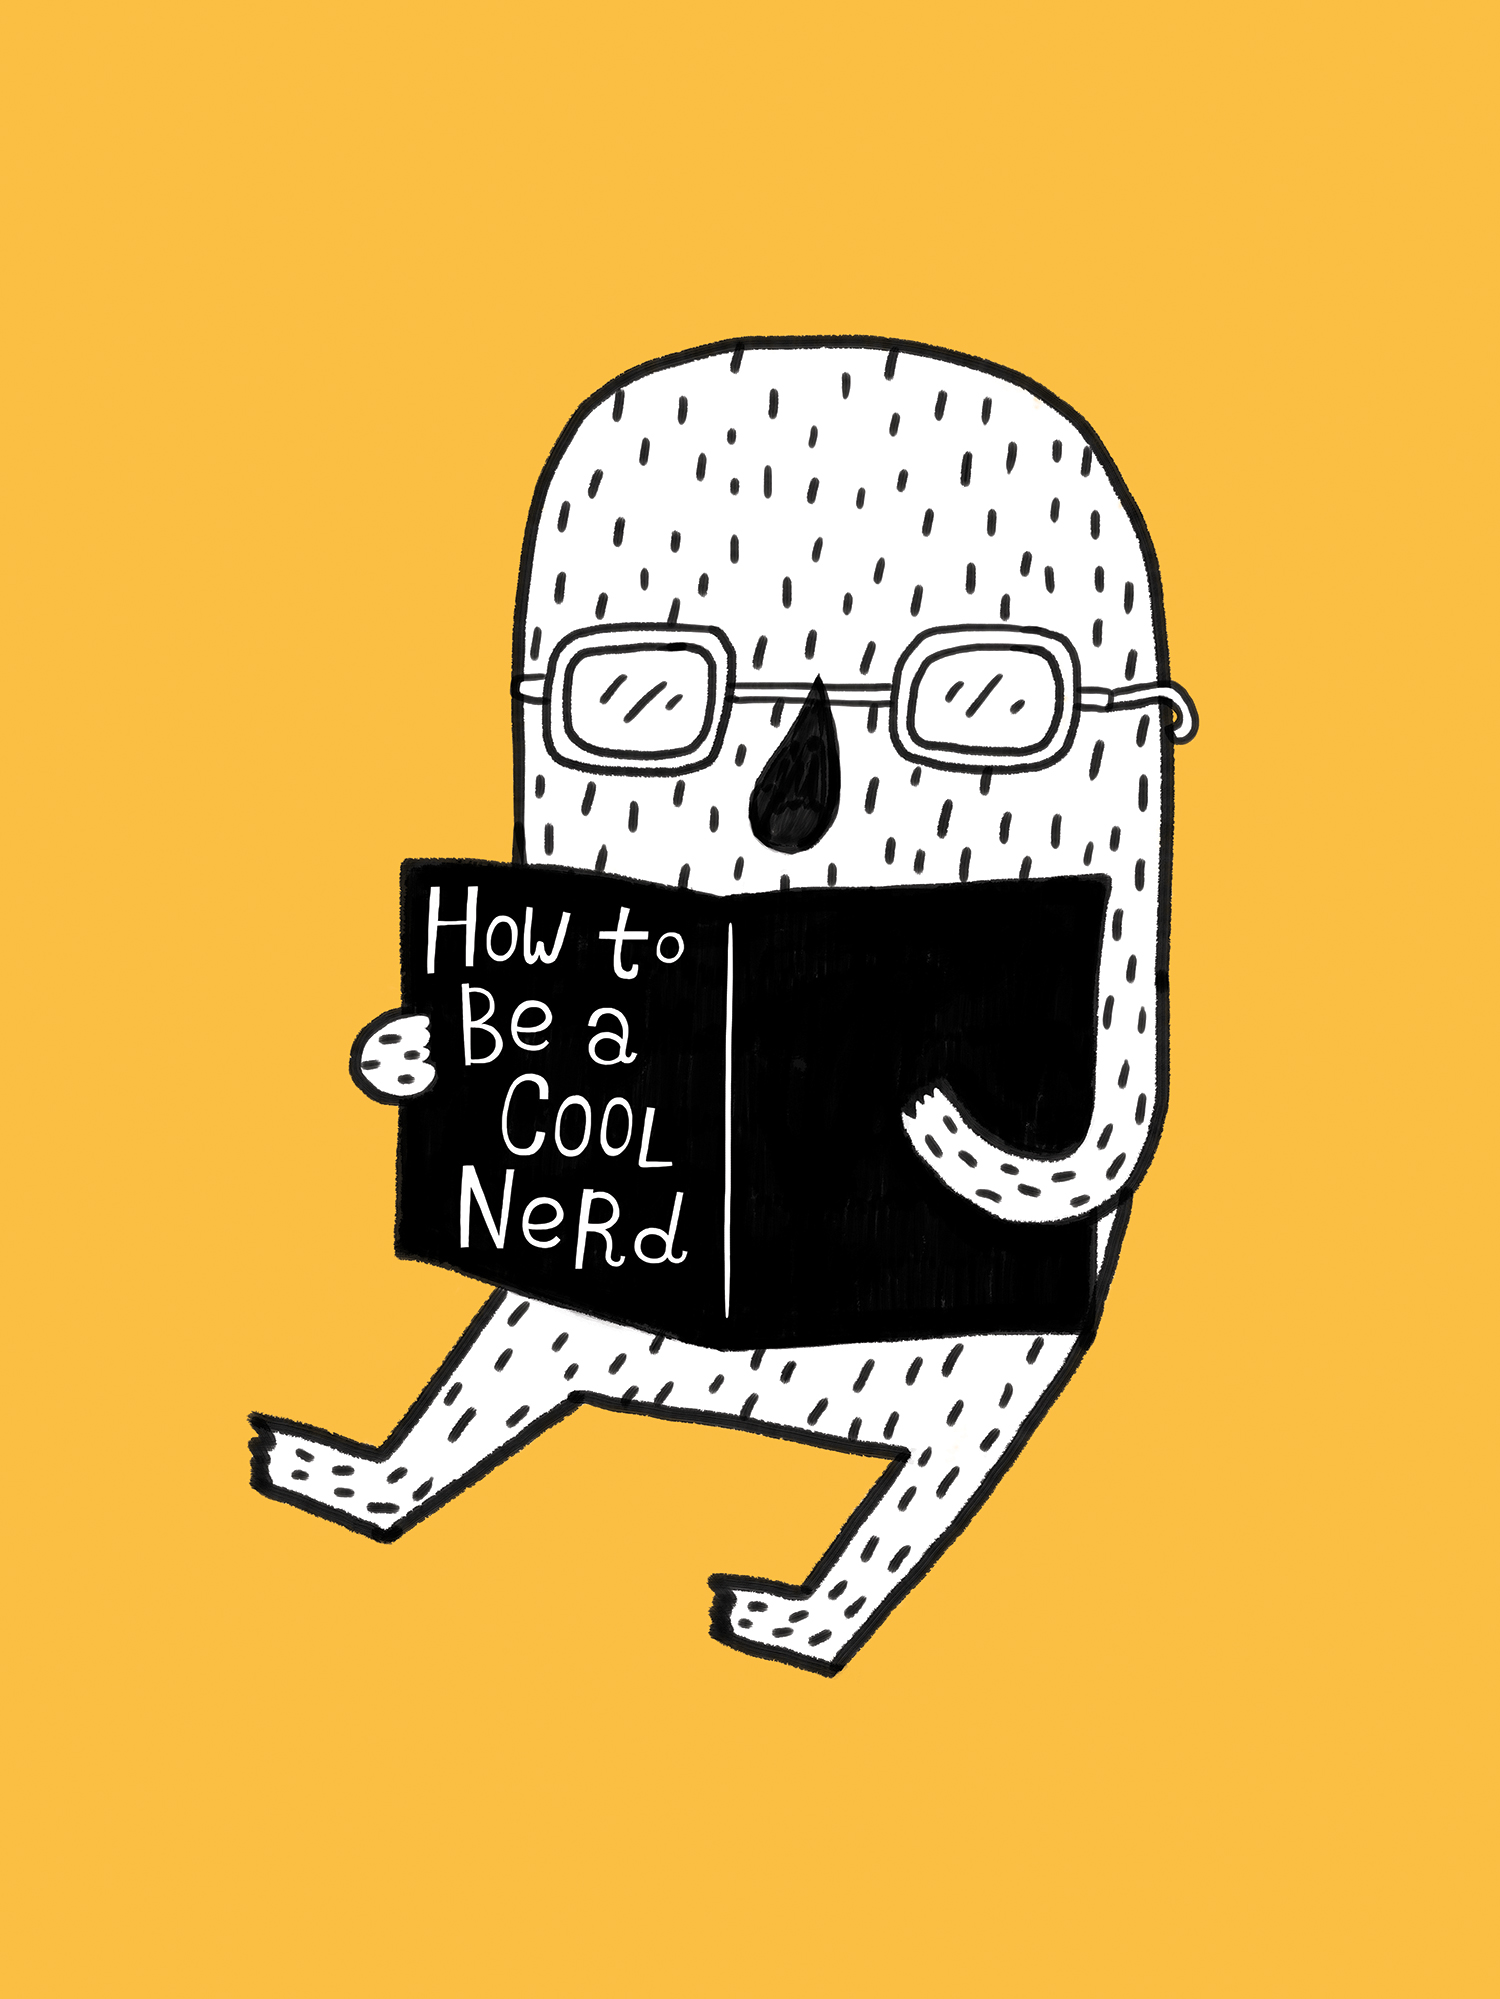 How To Be A Cool Nerd.jpg